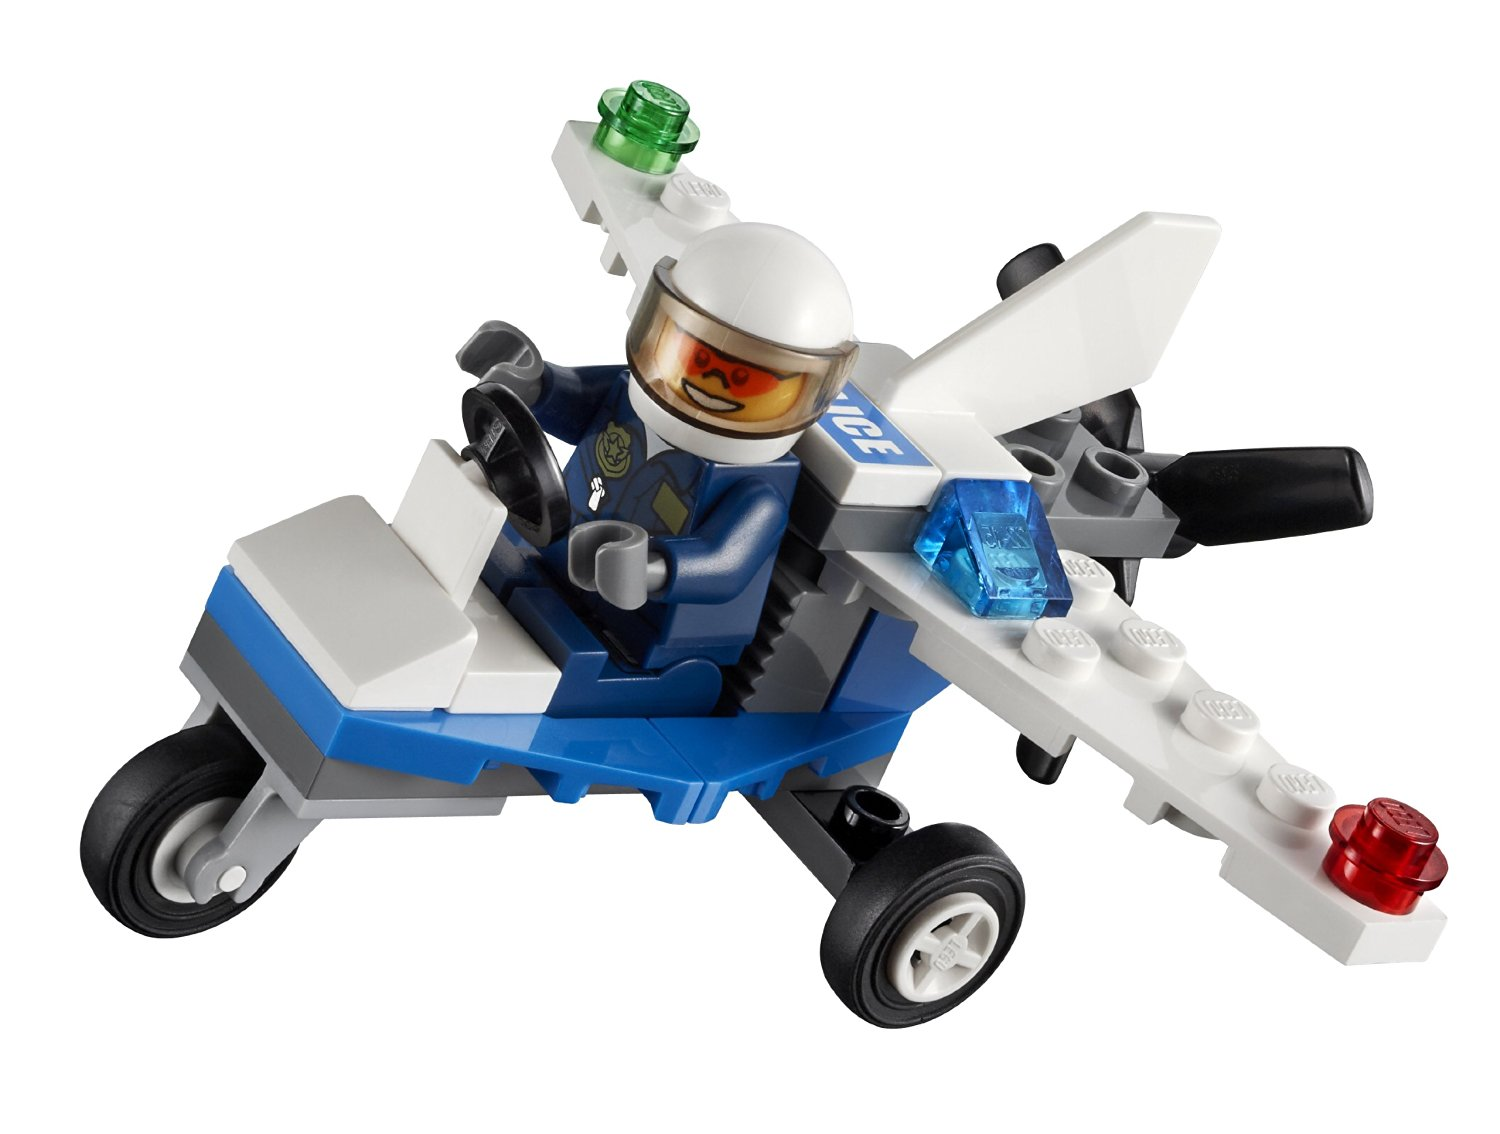 Cheap Lego Plane Find Lego Plane Deals On Line At Alibaba